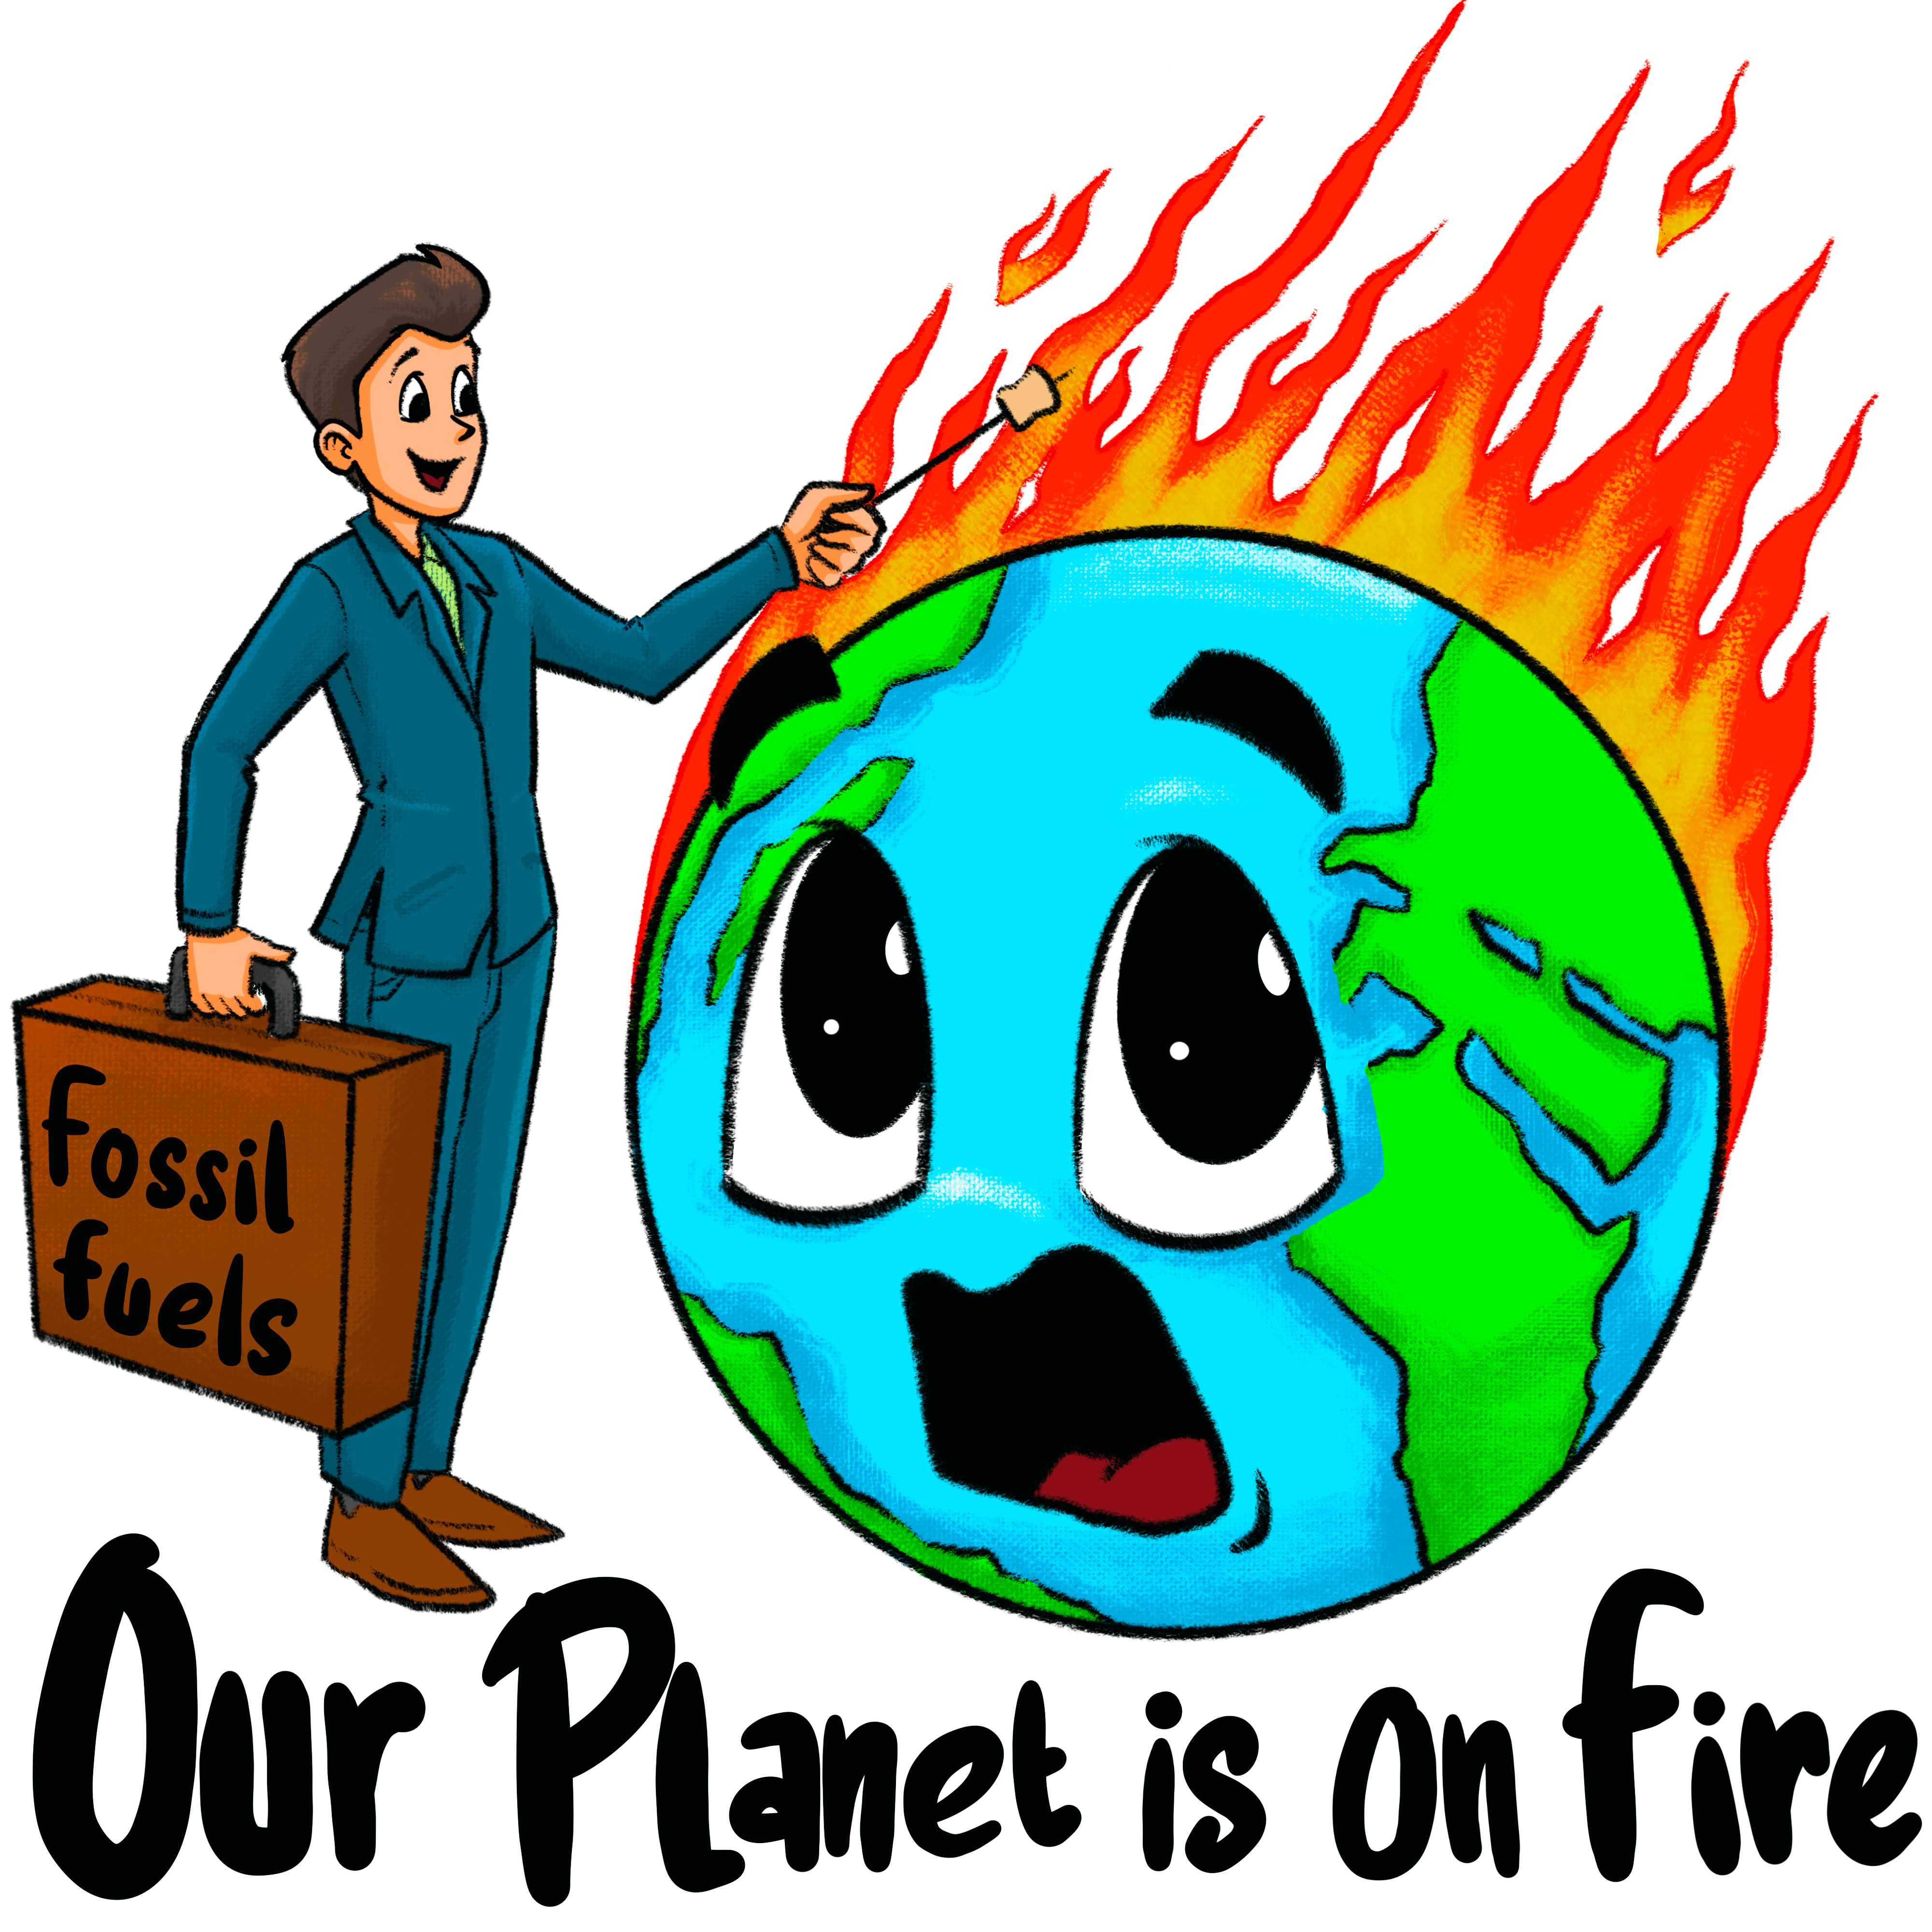 Our Planet is on Fire